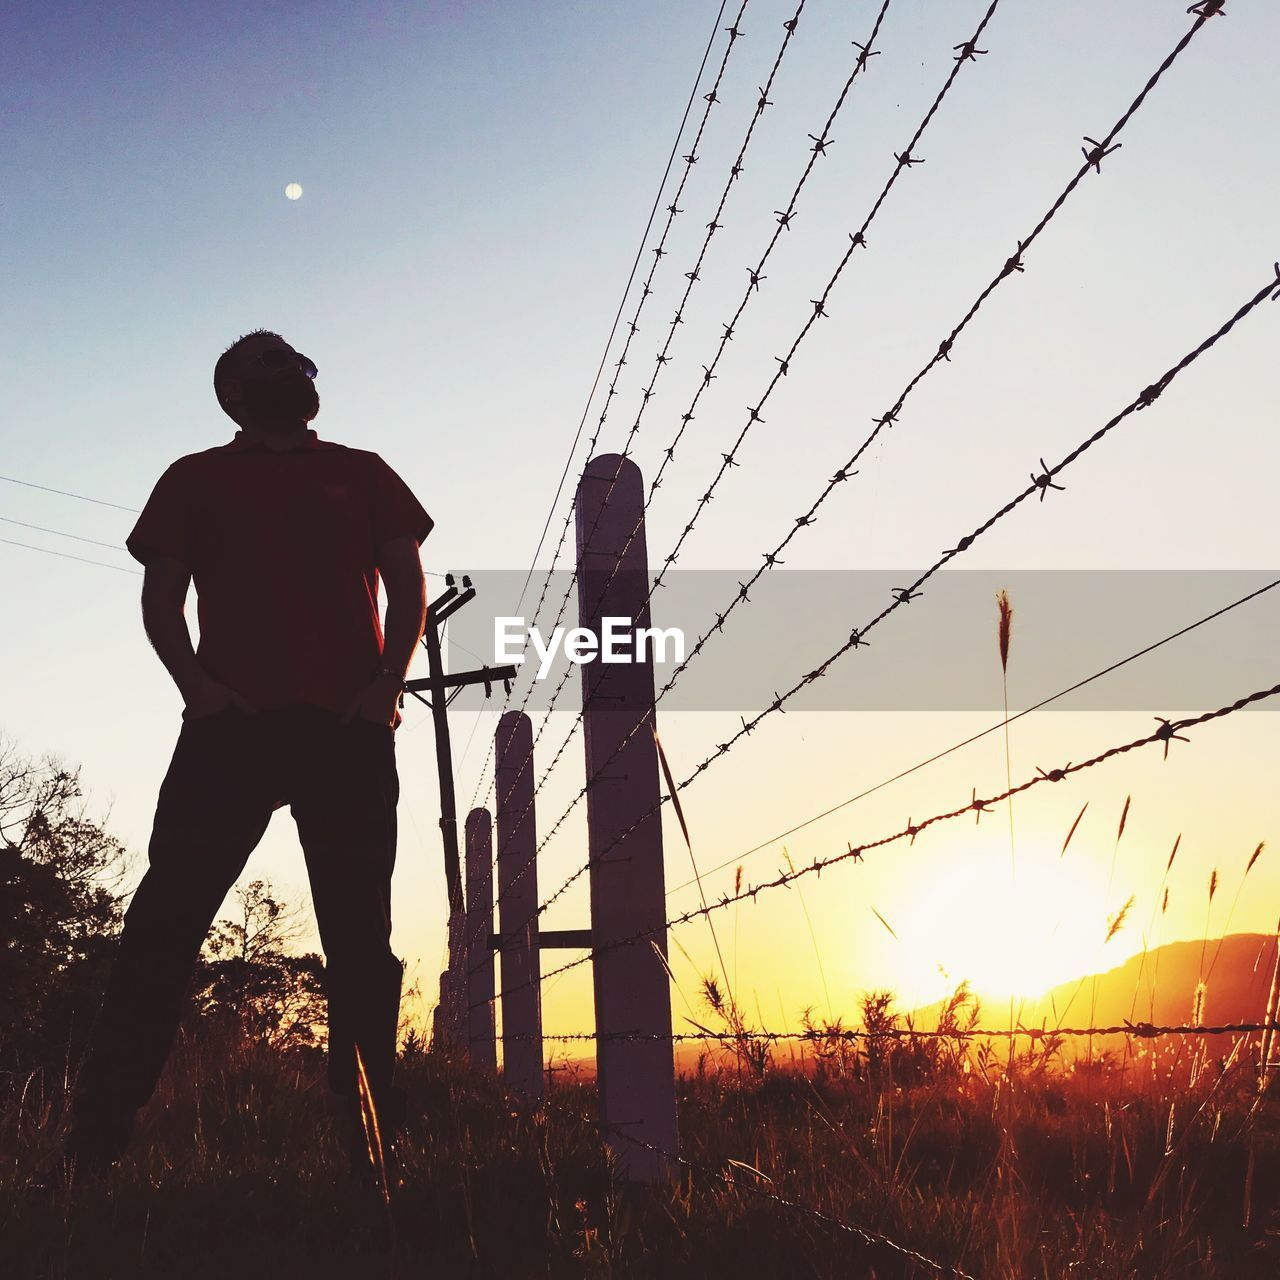 Man Standing On Field By Barbed Wire Against Sky During Sunset